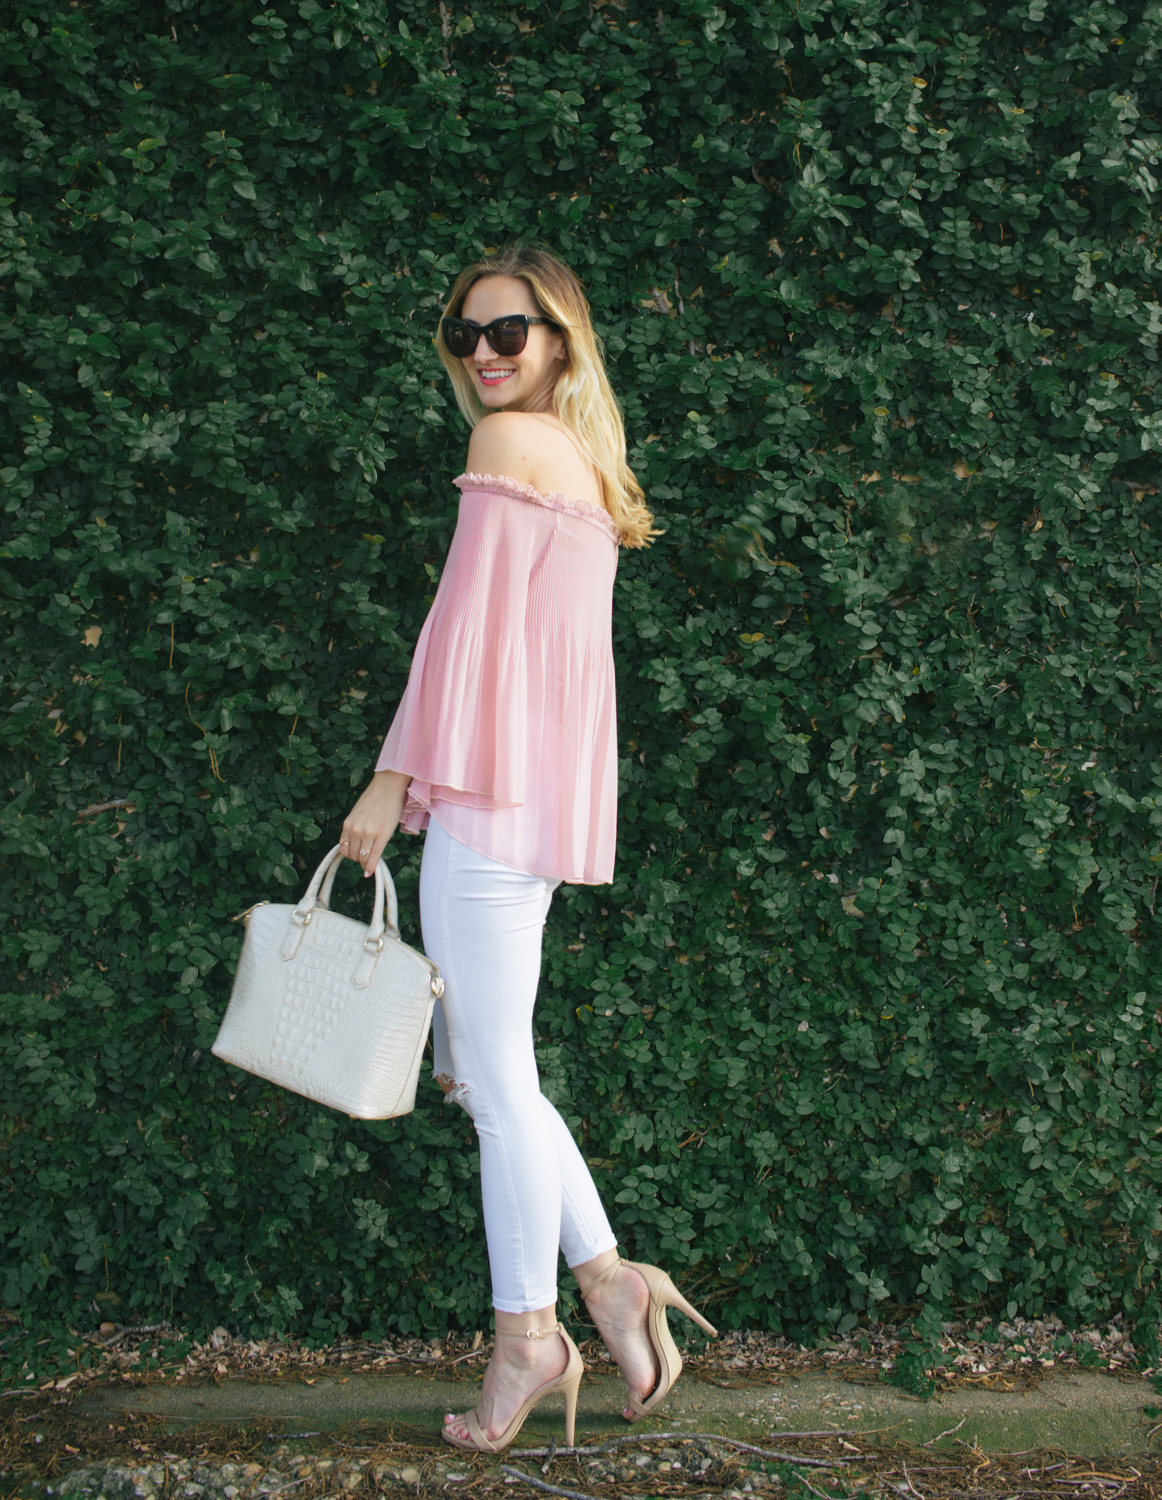 1-livvyland-blog-olivia-watson-austin-texas-fashion-blogger-blush-pink-off-shoulder-top-topshop-white-skinny-jeans-date-night-outfit-summer-4